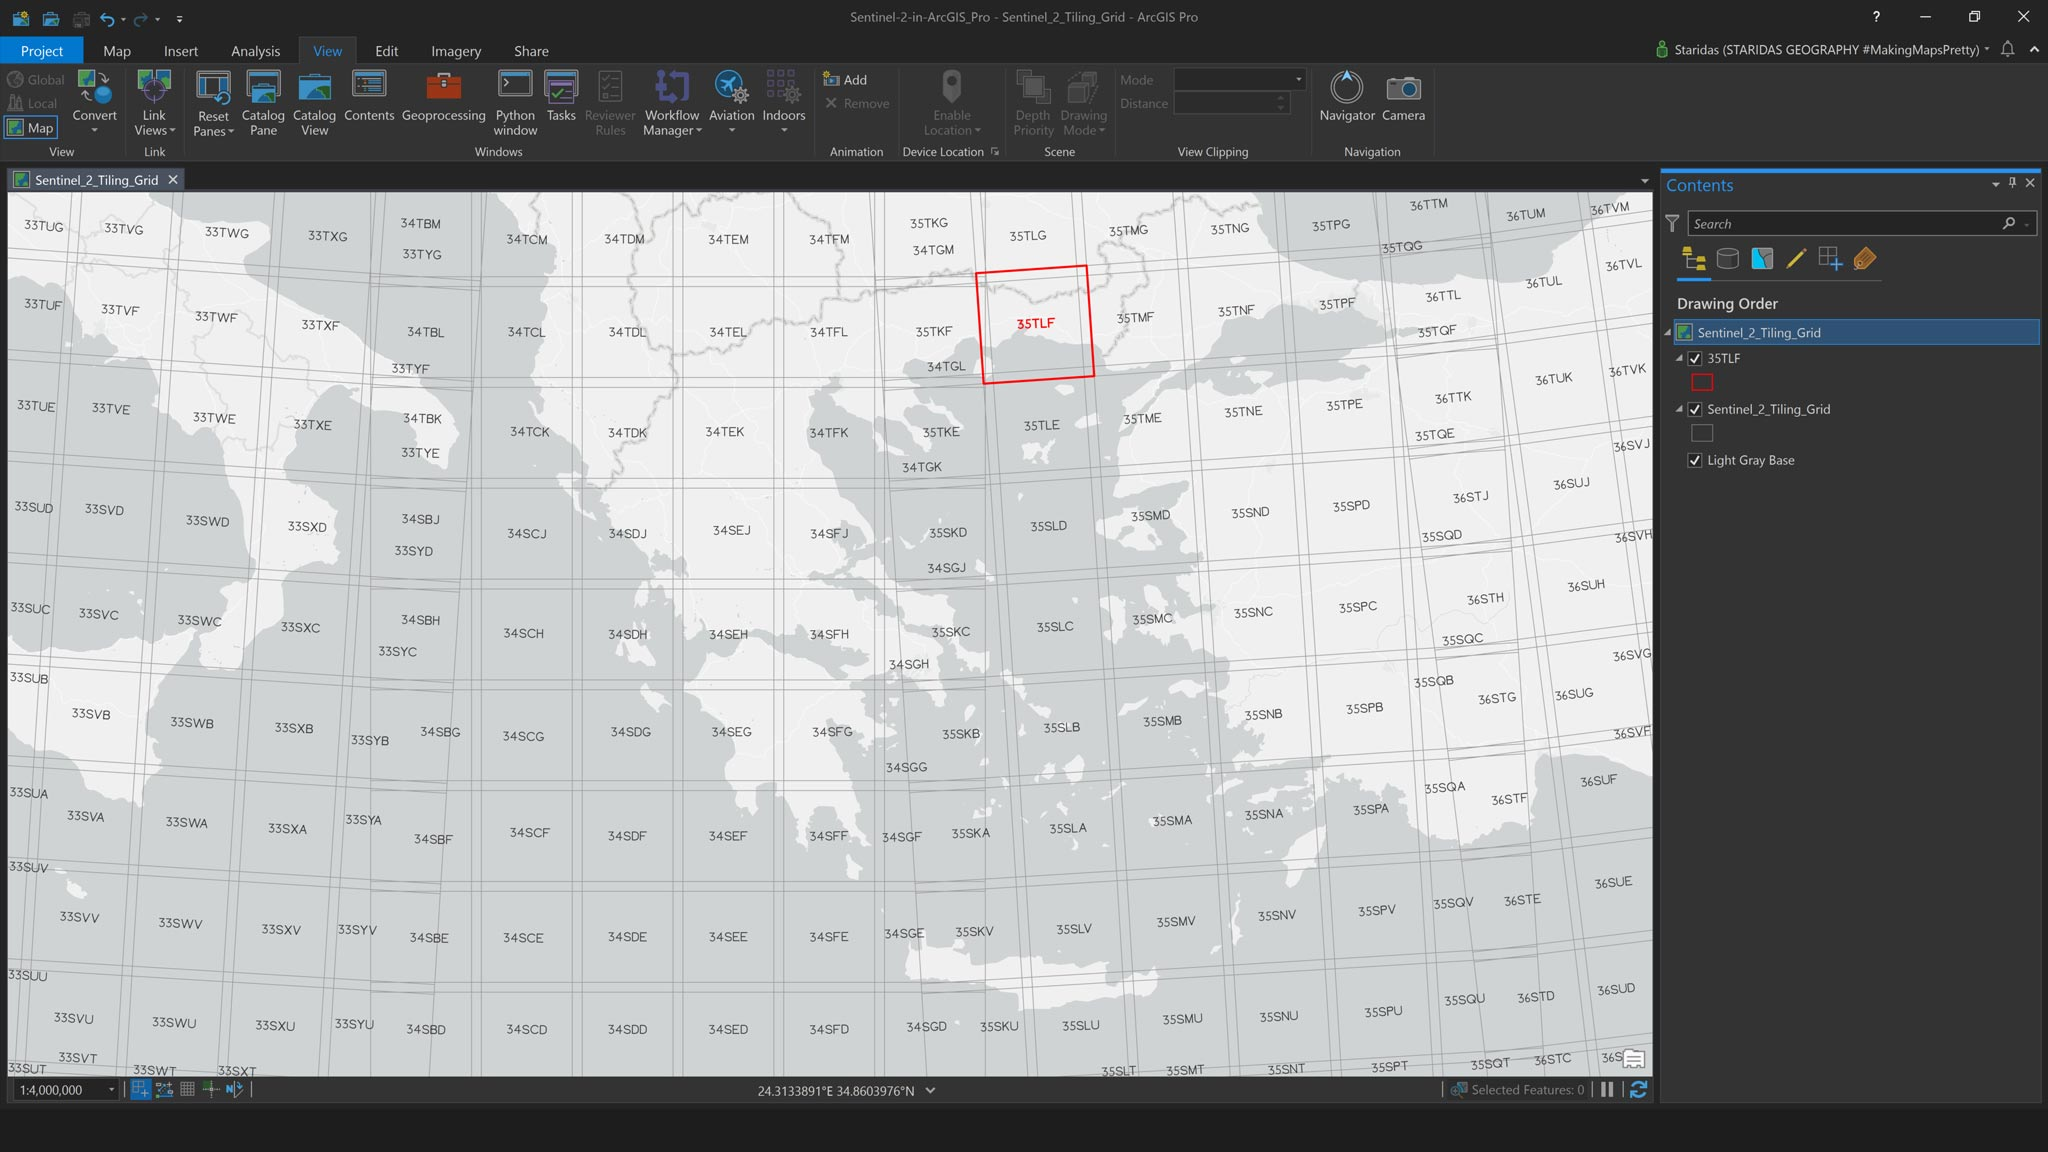 Picture 1: The Sentinel-2 Tiling Grid.